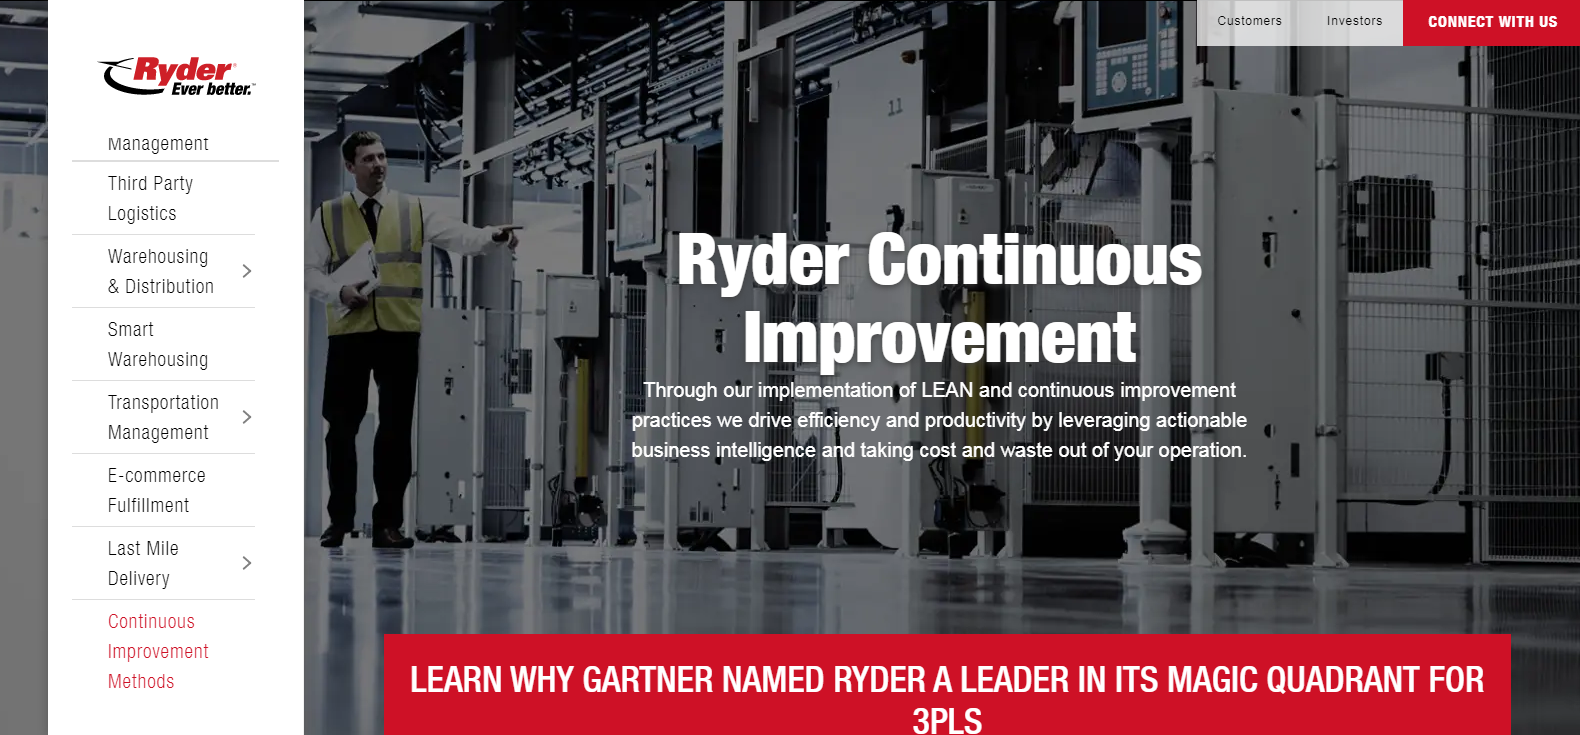 Ryder Supply Chain Solution Best Logistics Company